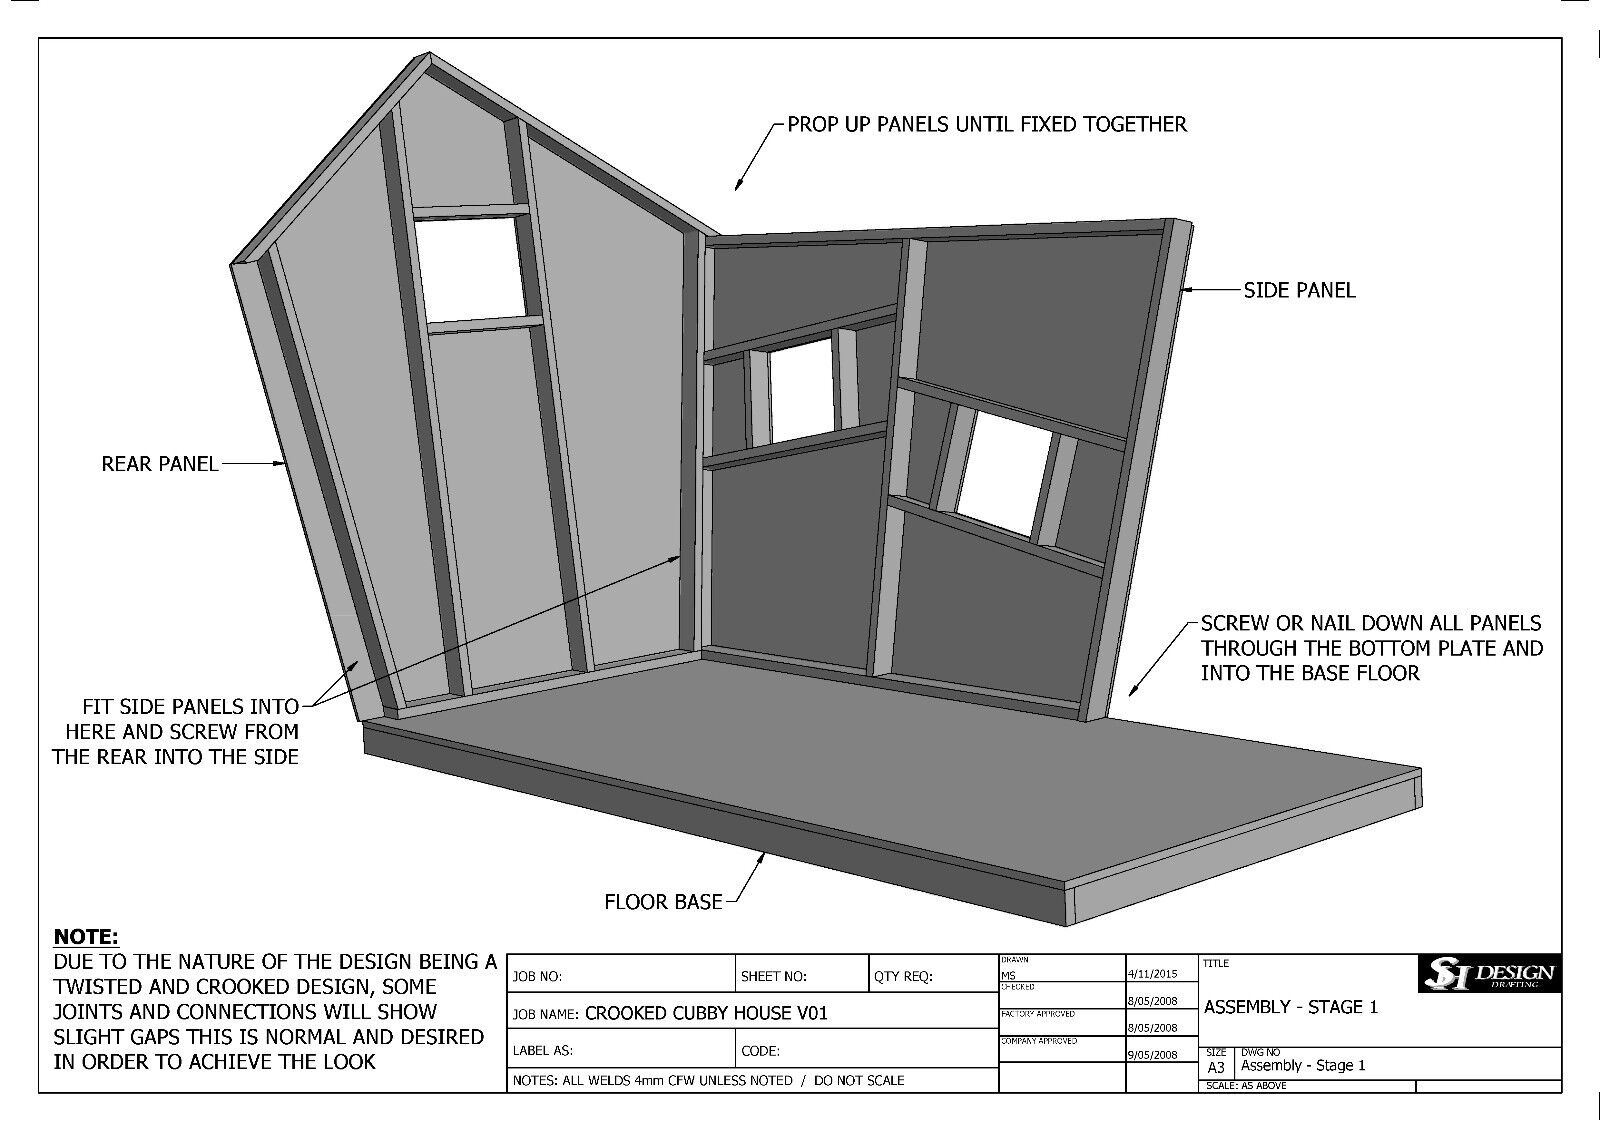 Crooked cubby house play house v05 building plans for Kennel construction plans